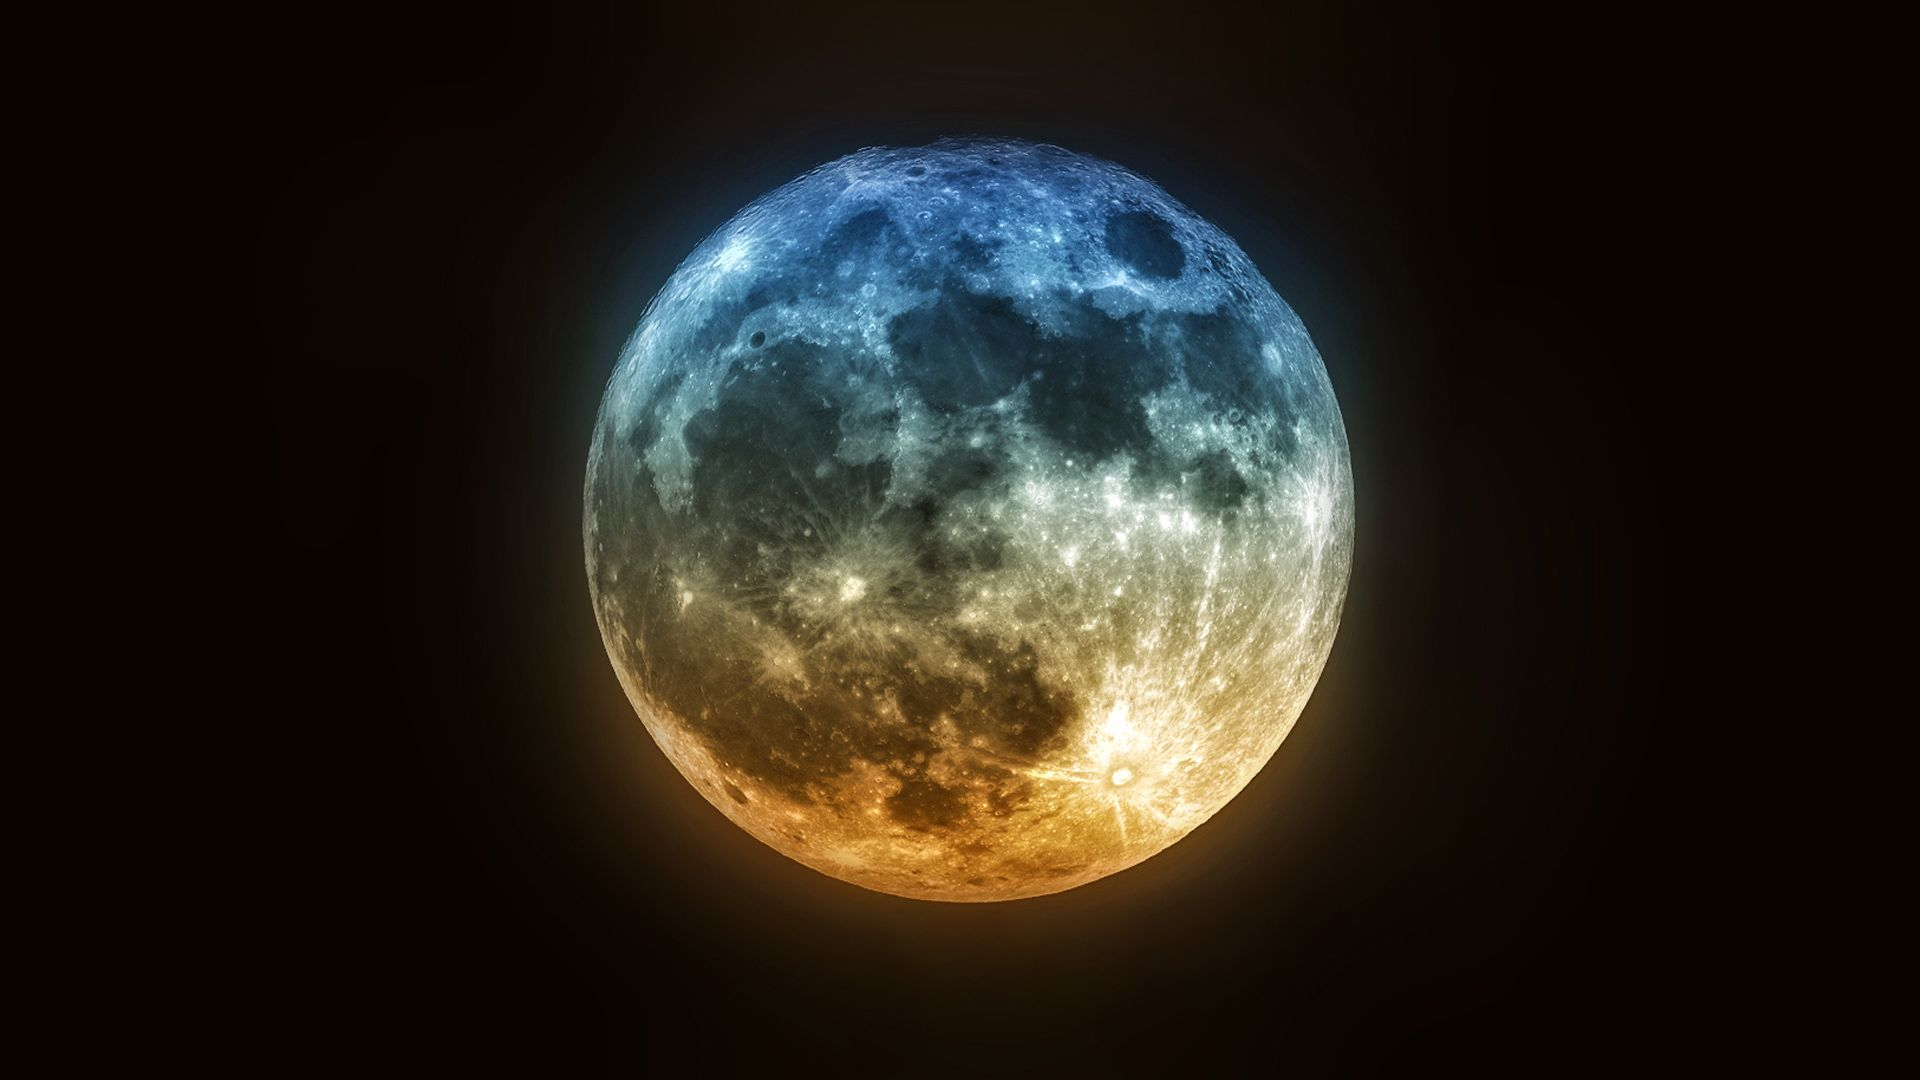 Blue And Red Moon Wallpaper Photos 13940 Wallpaper Beautiful Moon Super Moon Red Moon